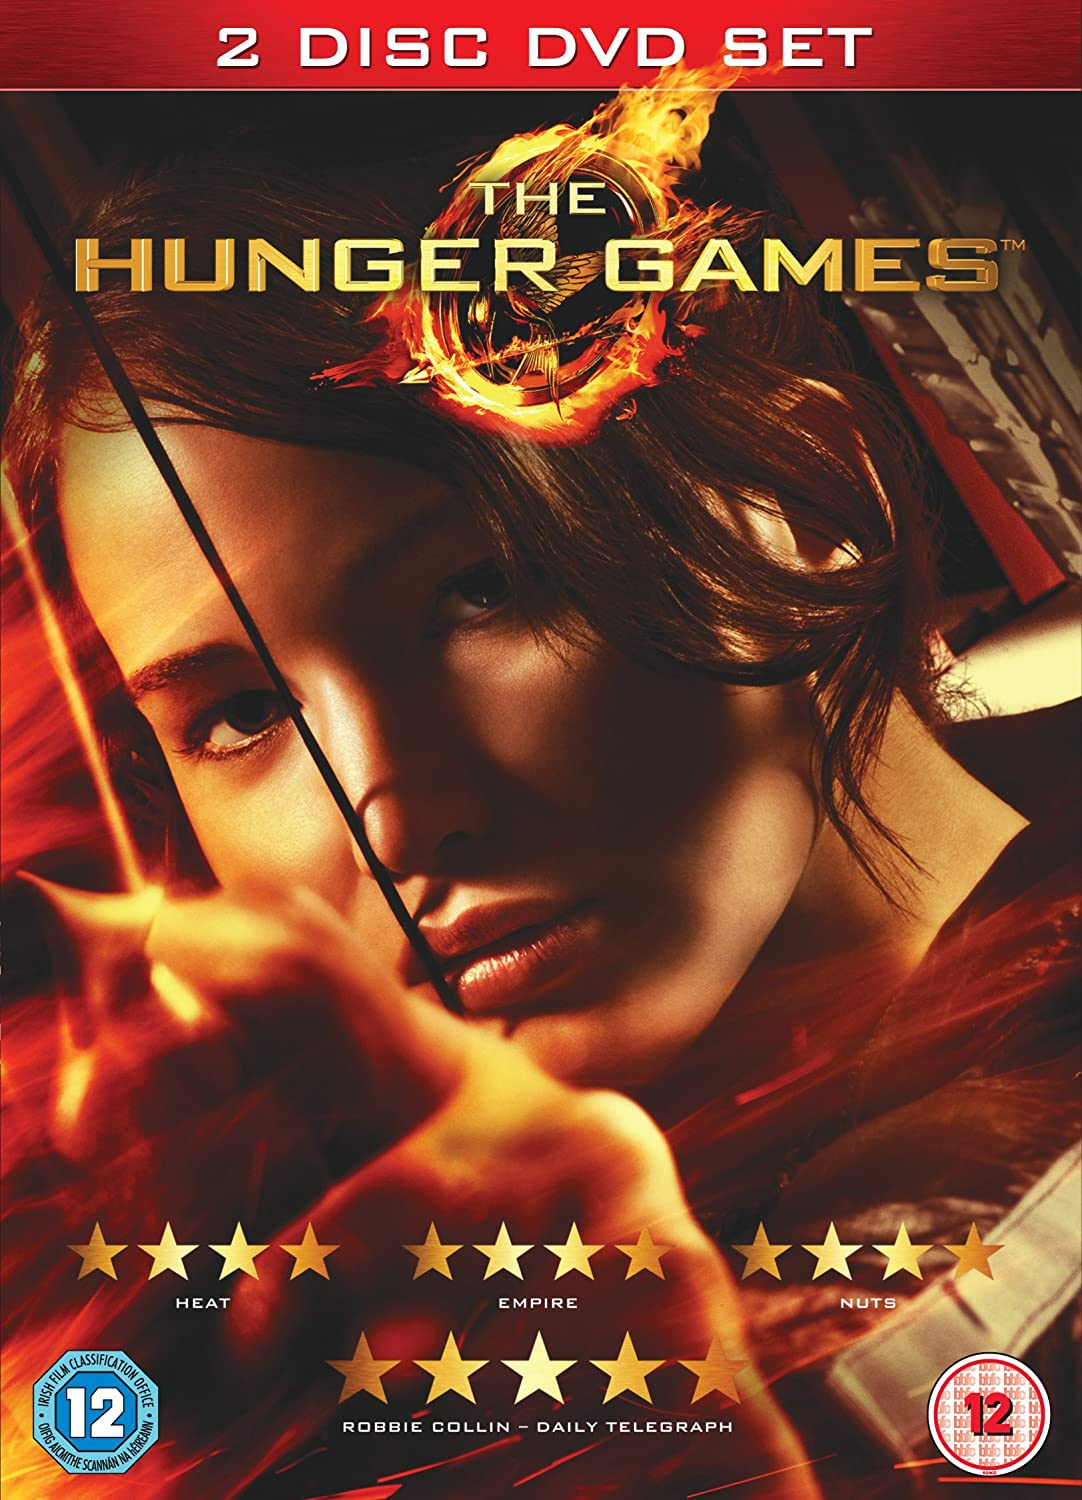 hunger games 1 & 2